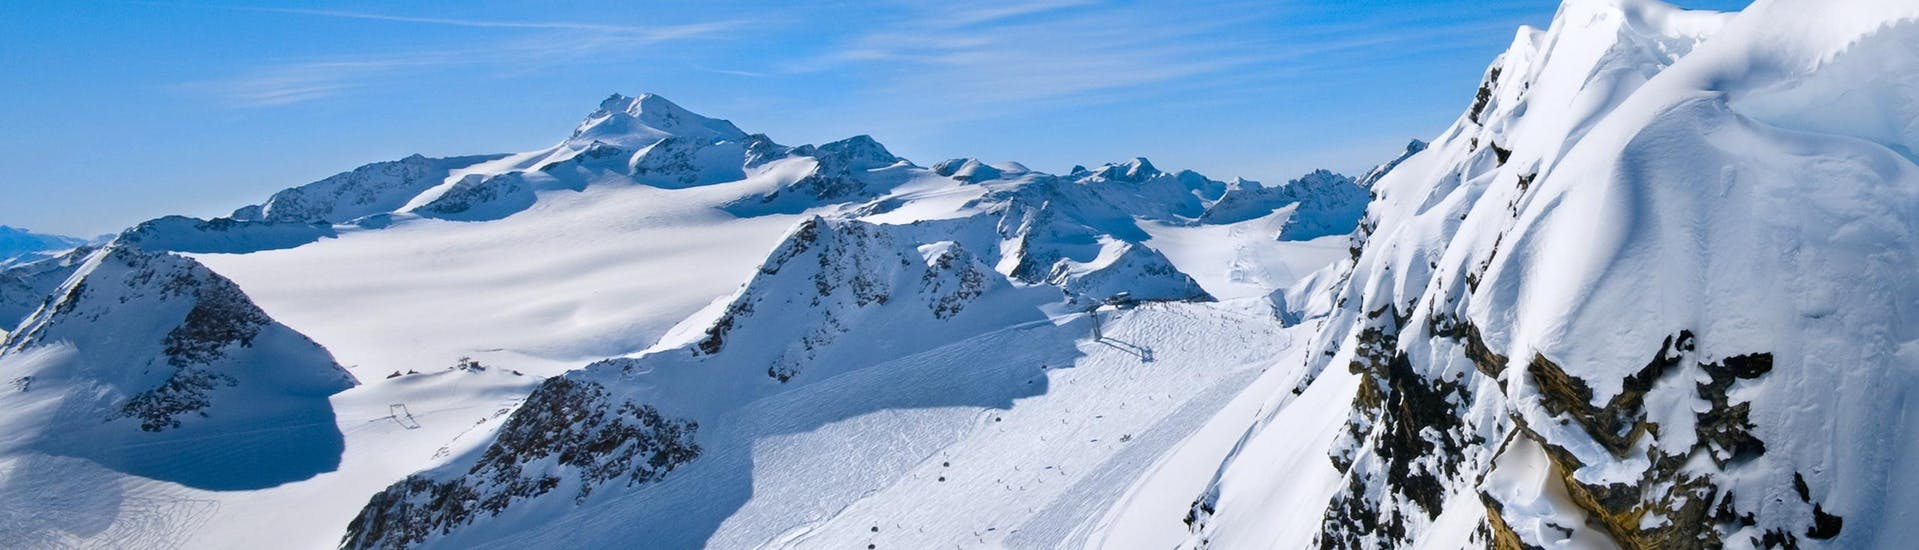 View of a snowy mountain top in a ski resort, in which Ski School Sport am Jet Flachau carries out ski lessons.